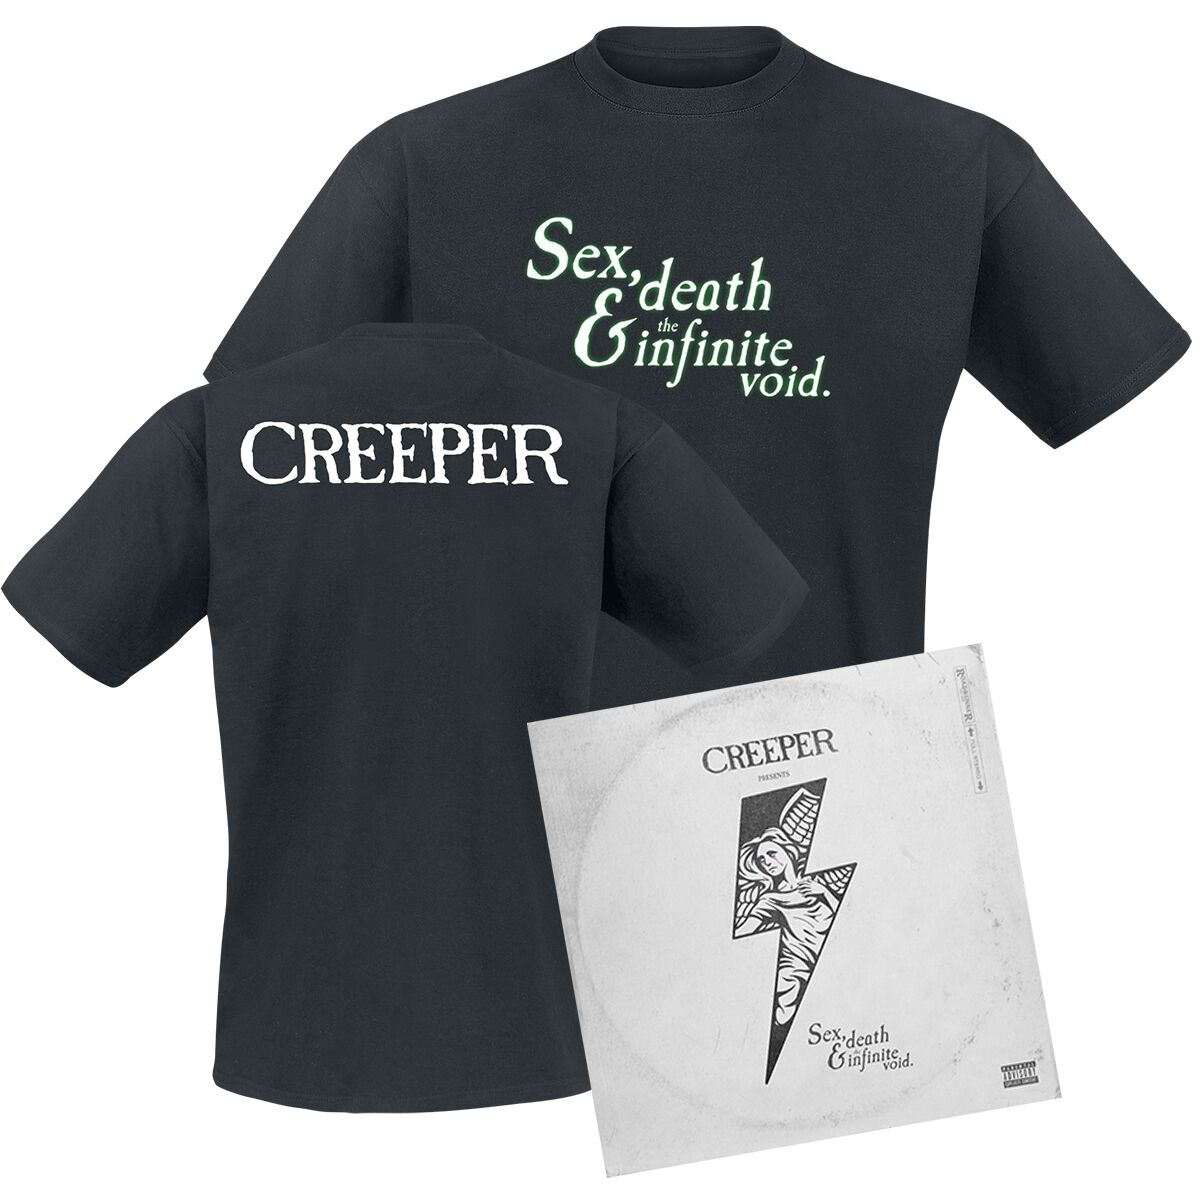 Image of Creeper Sex, death & the infinite void CD & T-Shirt Standard